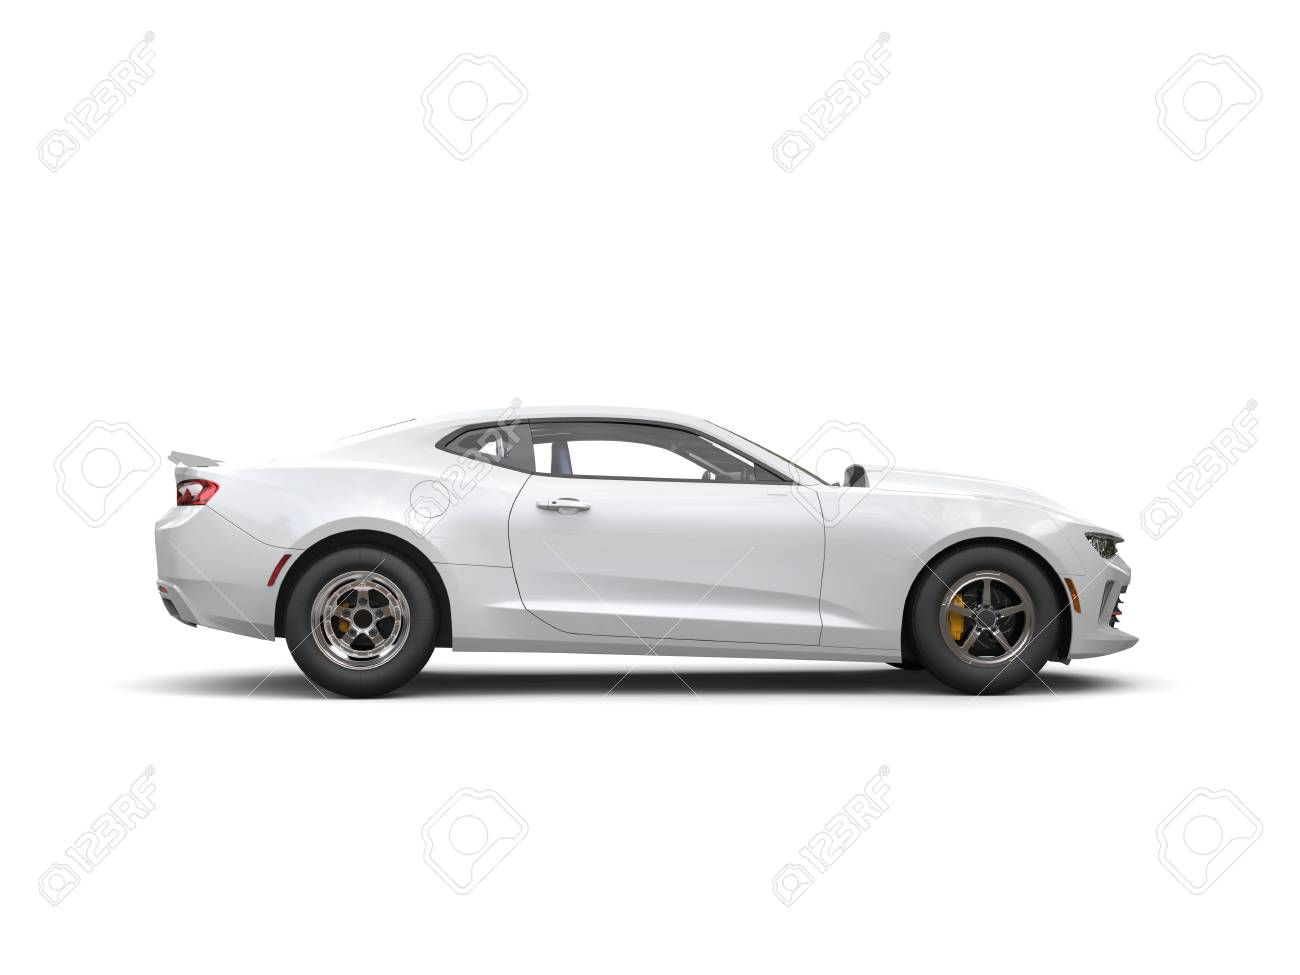 Snow White Muscle Car Side View Stock Photo Picture And Royalty